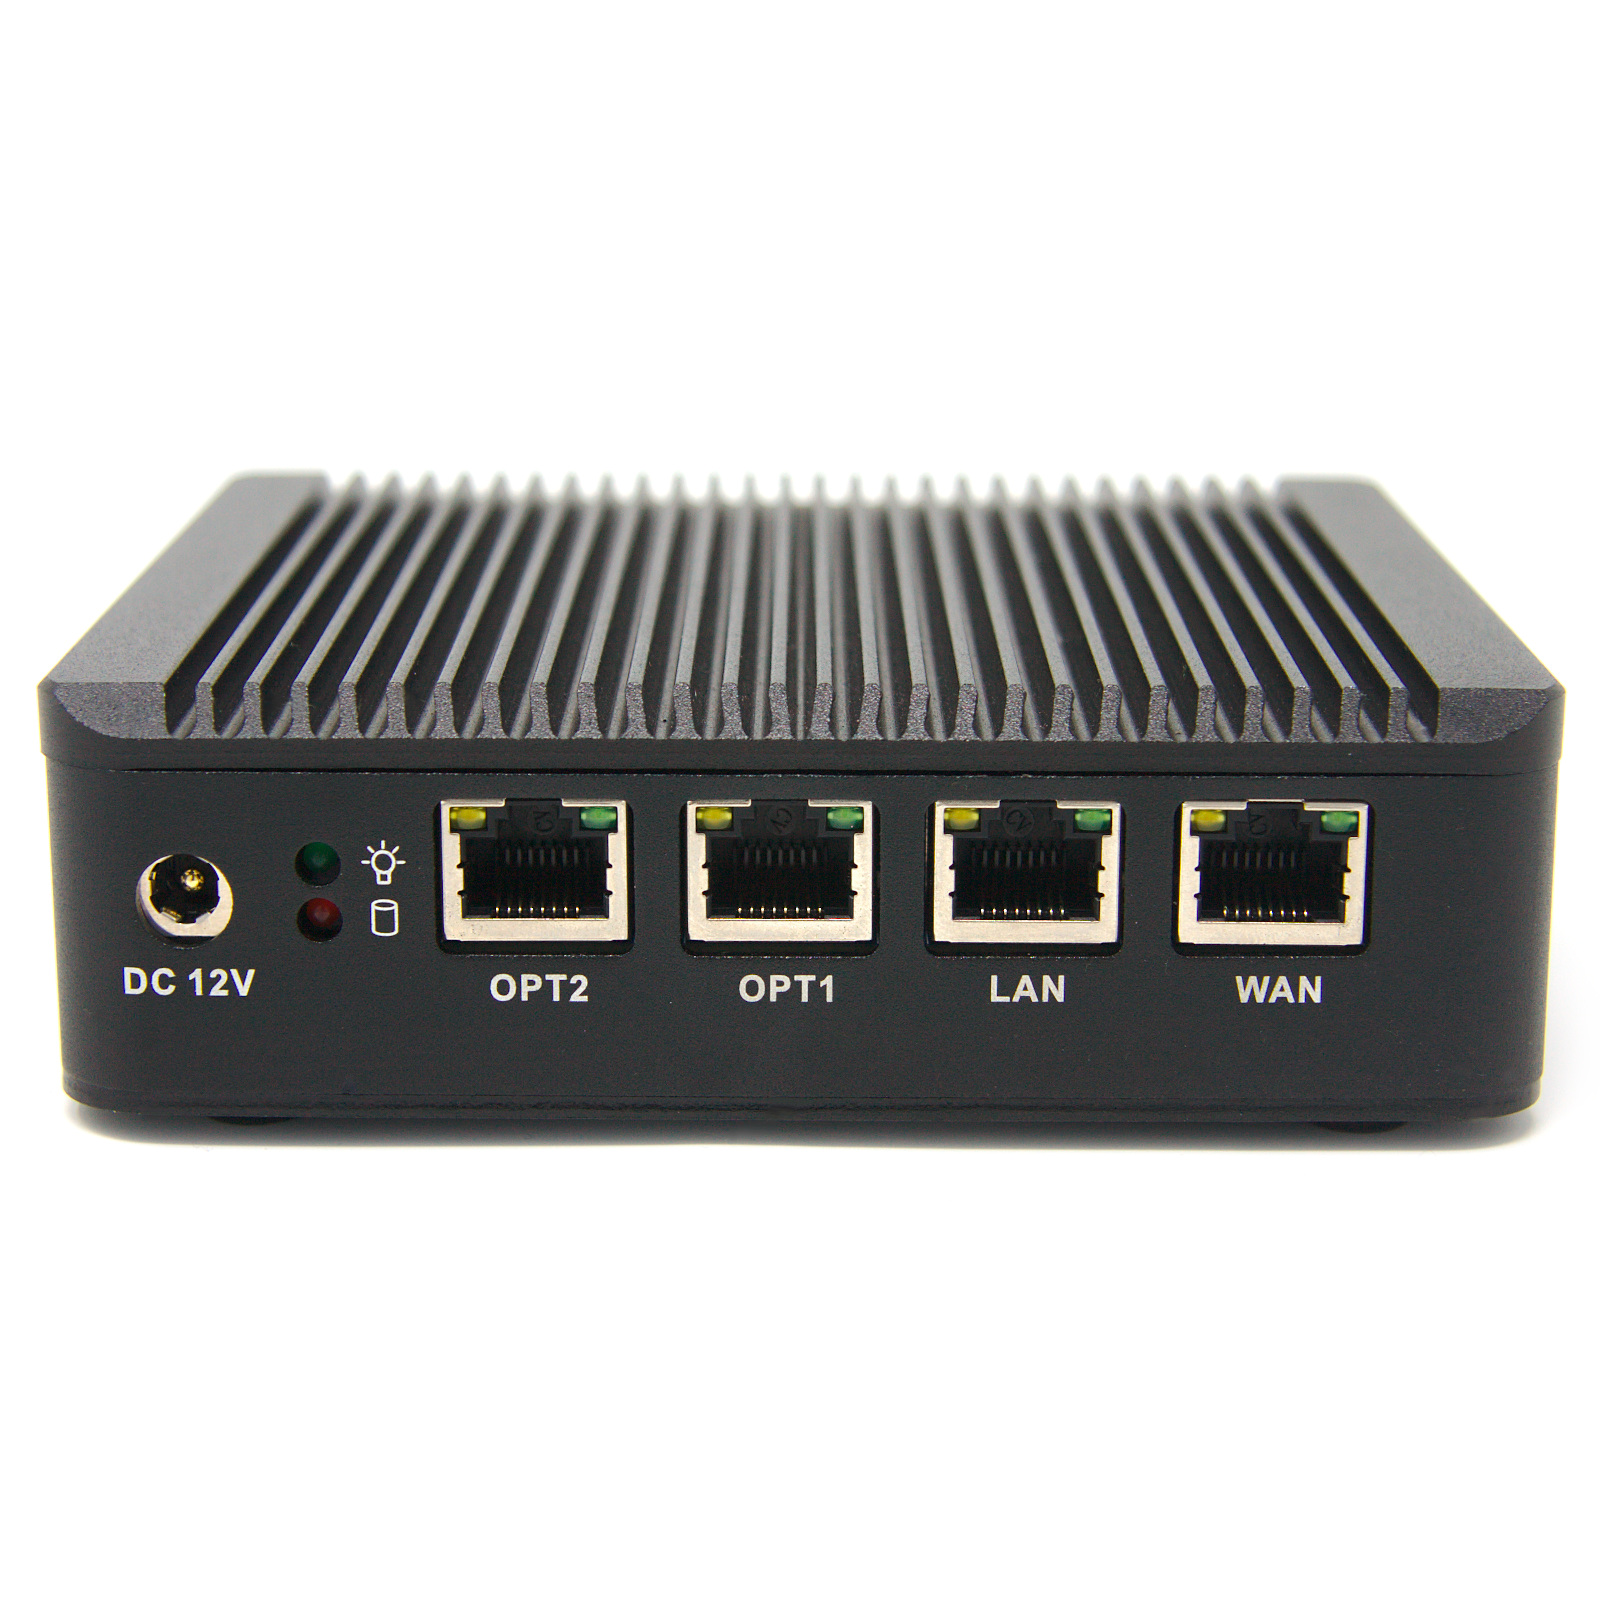 Protectli Firewall Appliance With 4X Intel Gigabit Ports